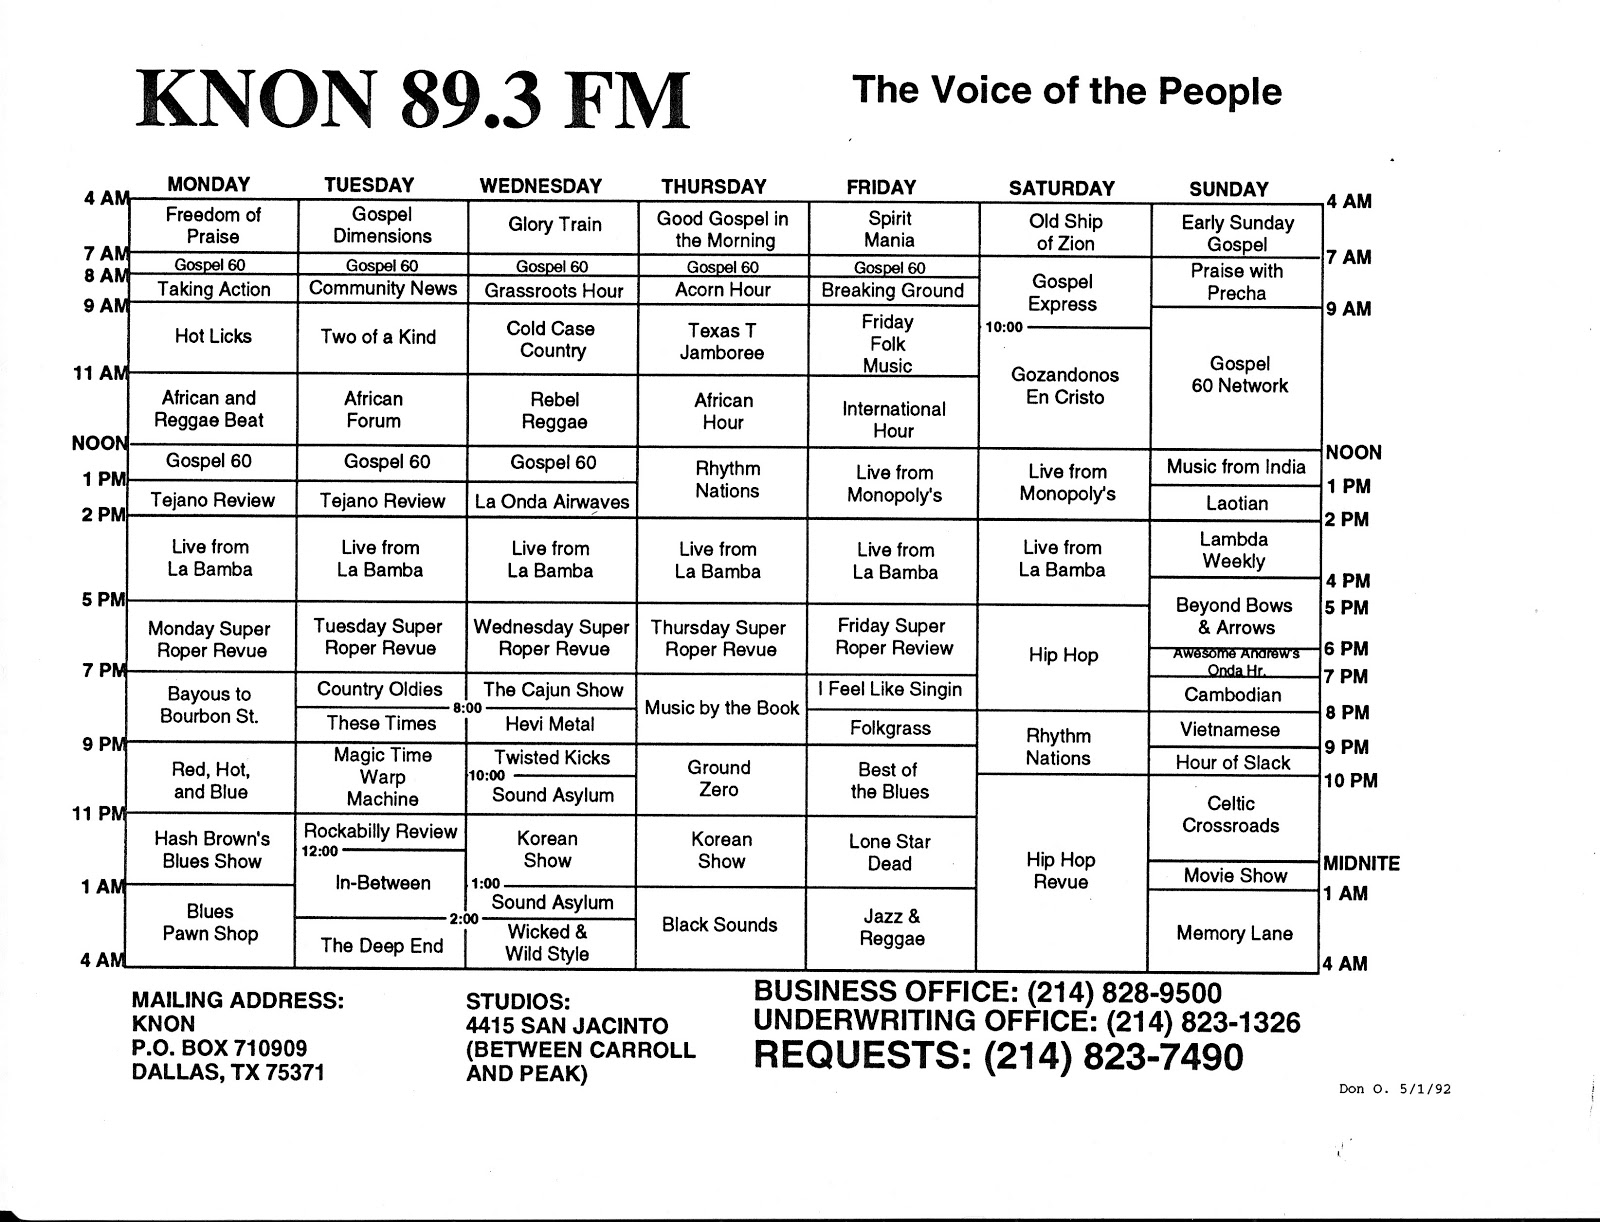 The History of KNON 89.3 FM in Dallas, Texas: KNON voted Best ...